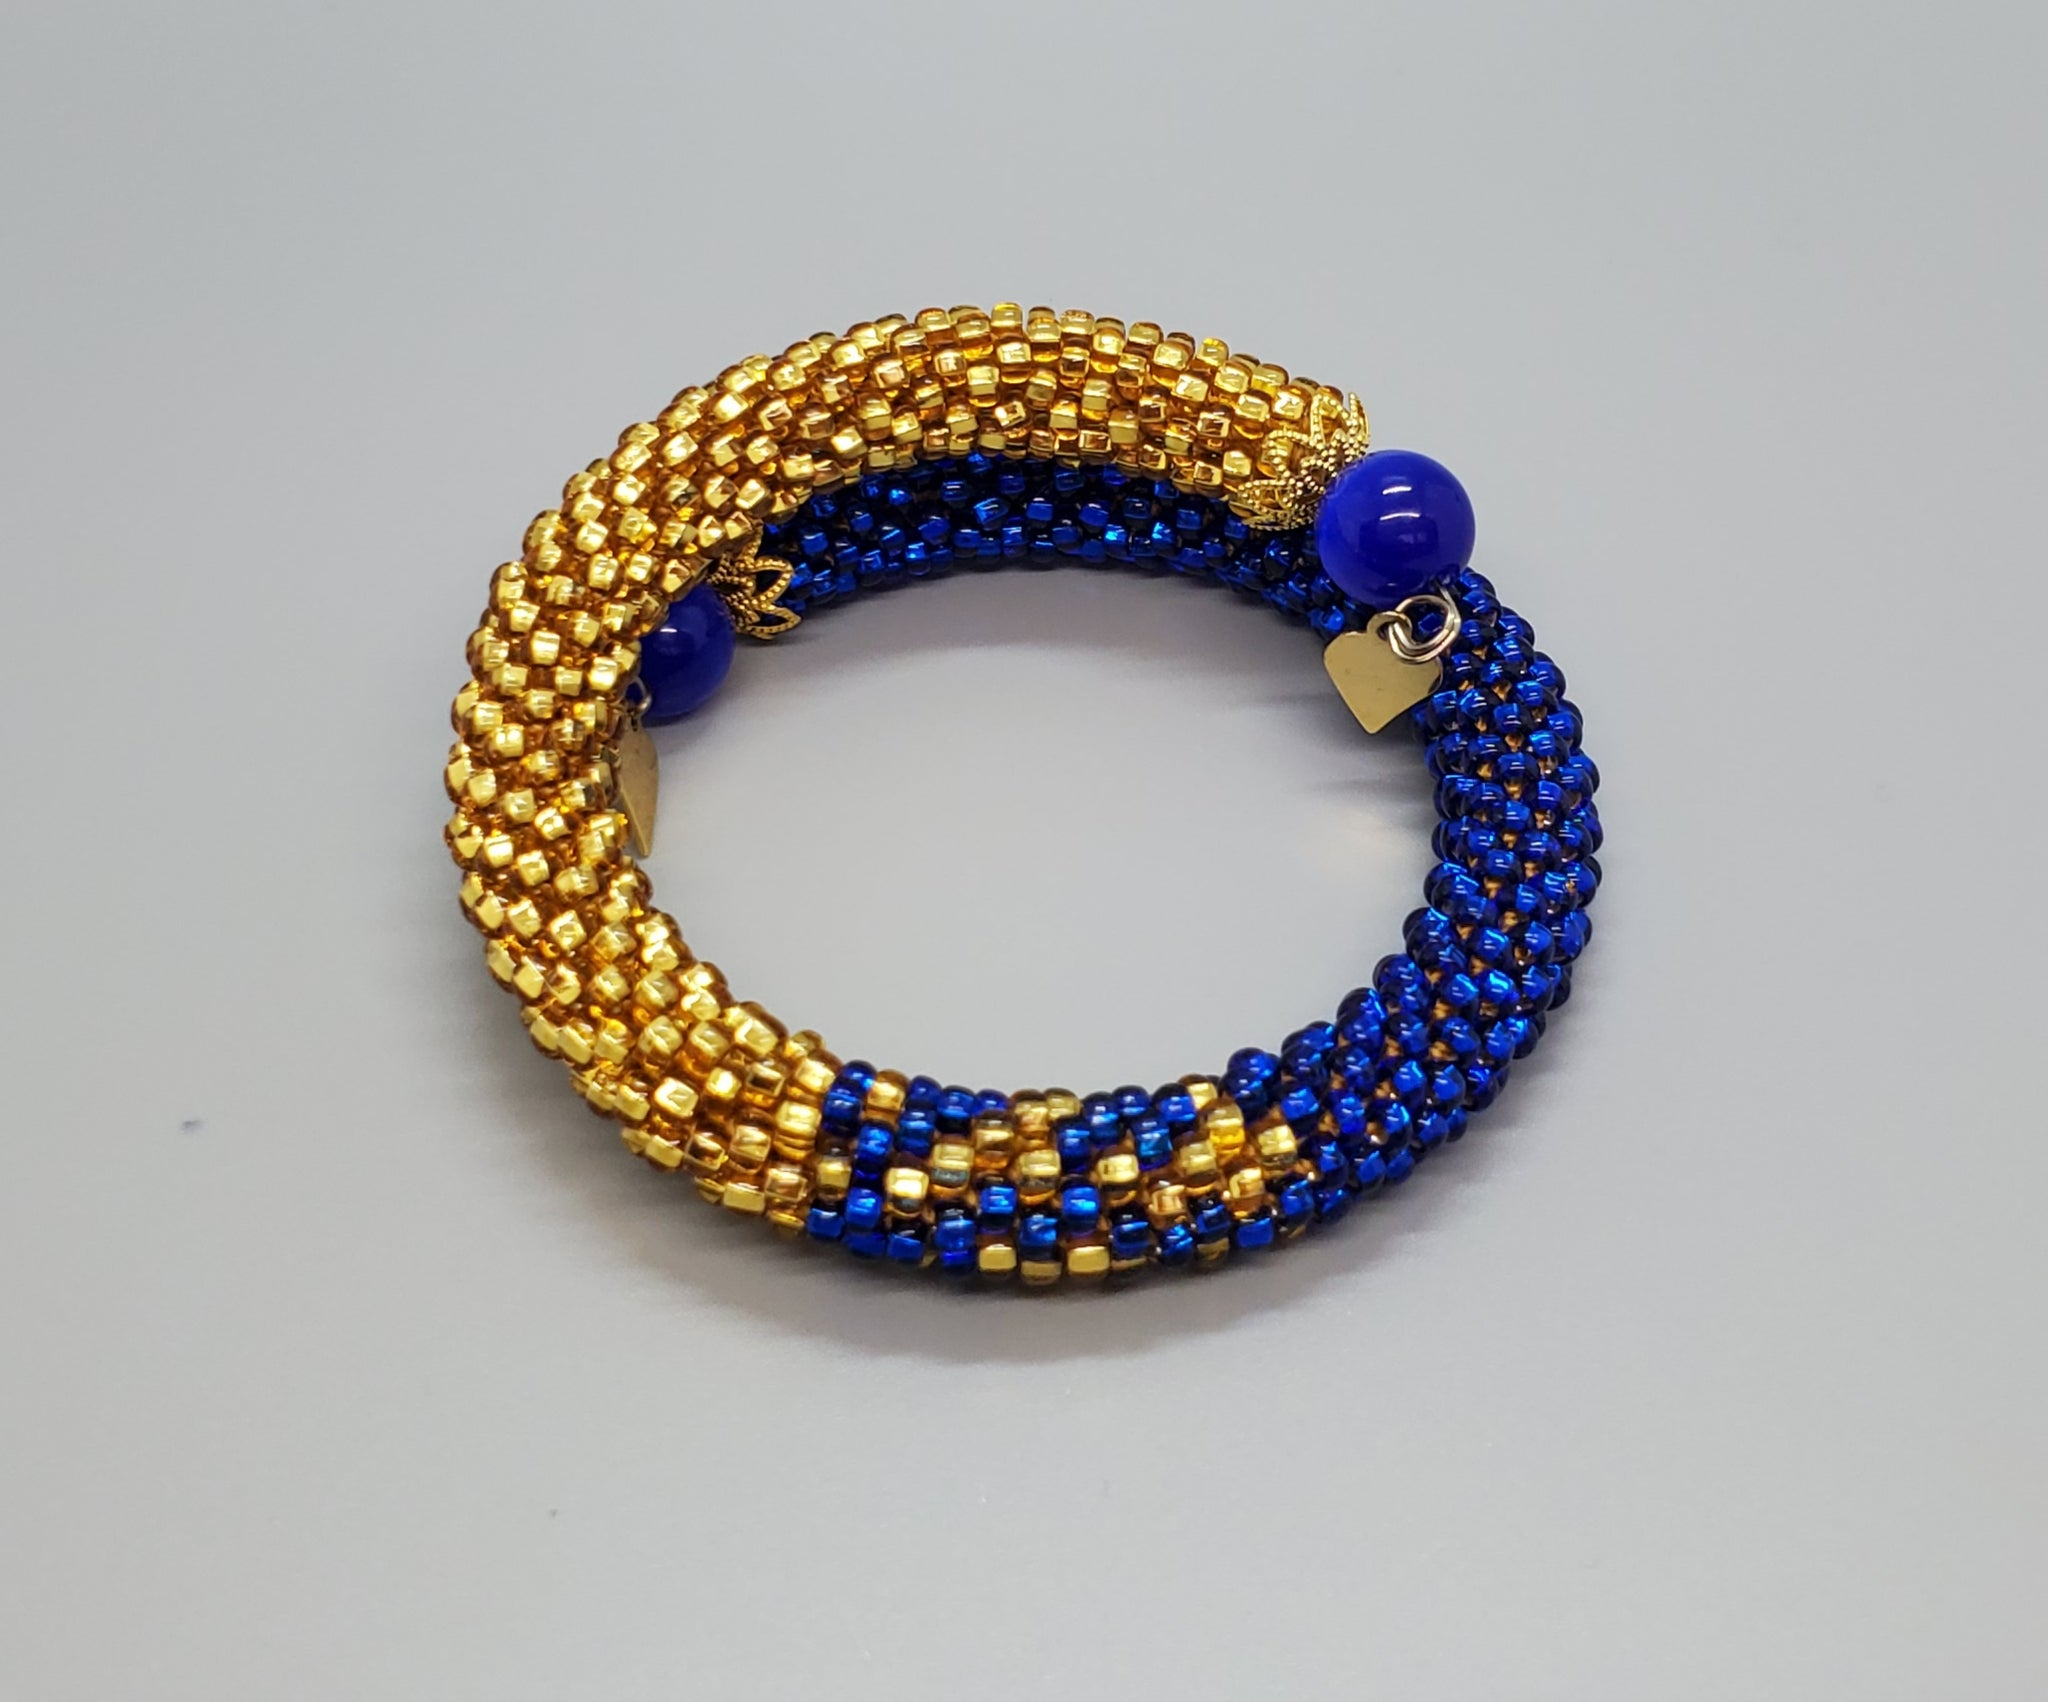 Blue Cat Eye Beads, Capri Blue, Gold Topaz Czech Seed Beads, Brass, Beaded Crochet Bangle